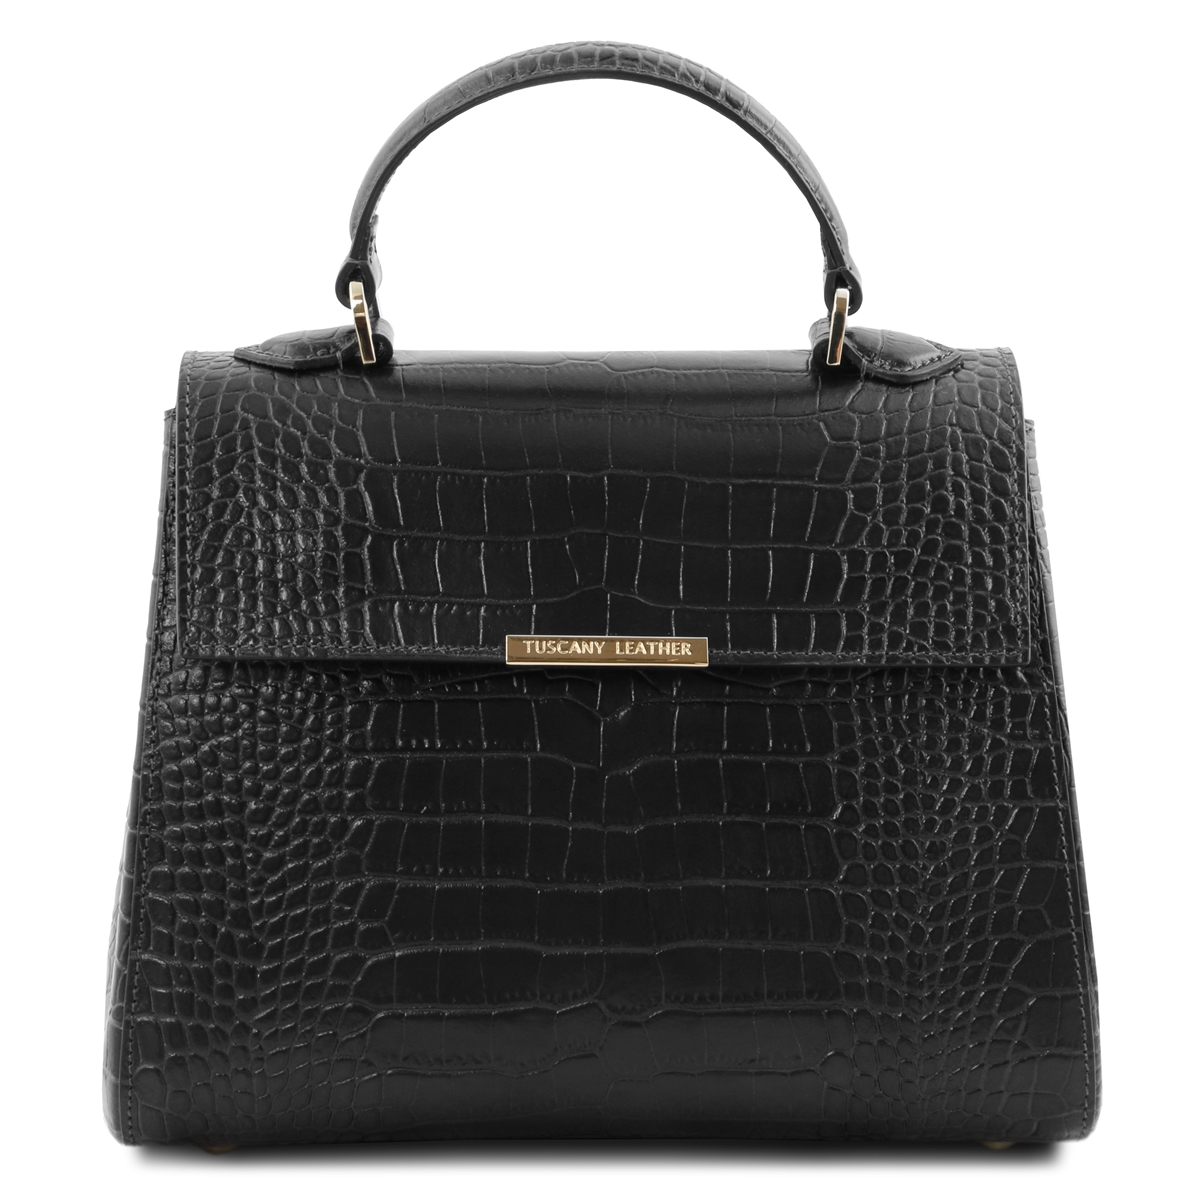 Croc Print Black Leather Handbag